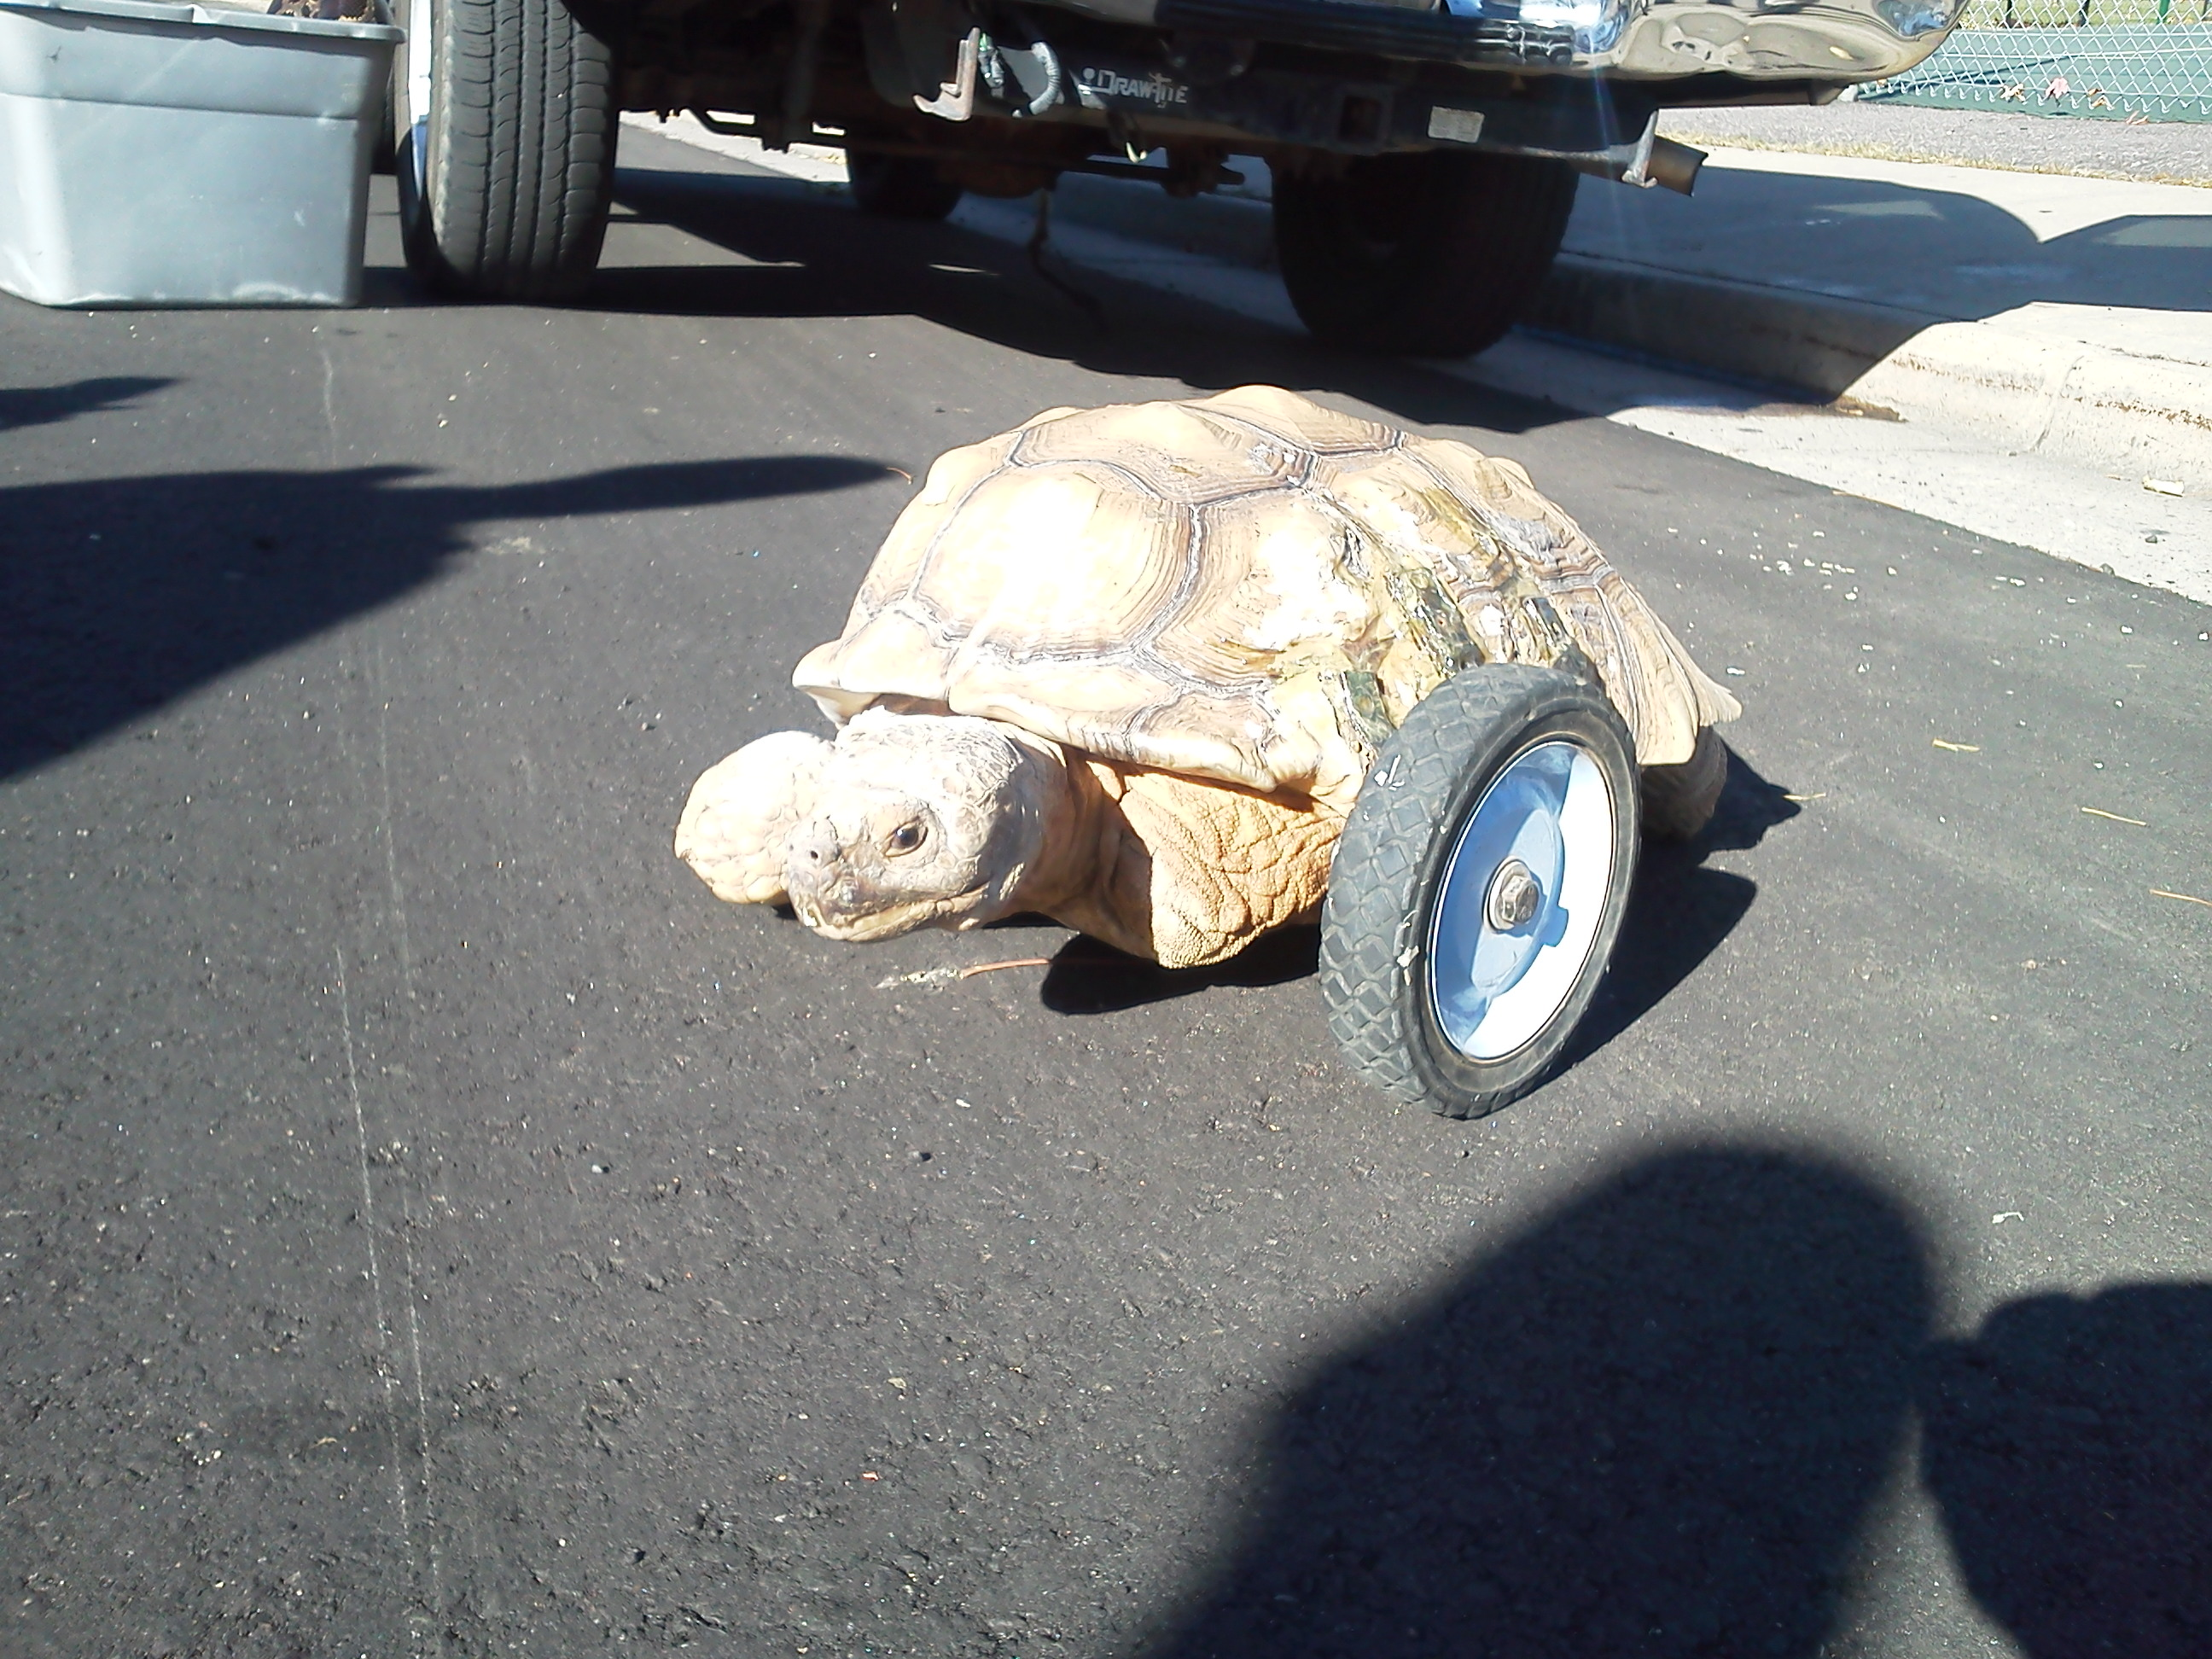 """""""Stumpy"""" the African Spurrred tortoise was one of 15 reptiles recovered when police found Phil Rakoci's stolen SUV on Oct. 18, 2012. (Photo: Dan Gillett)"""